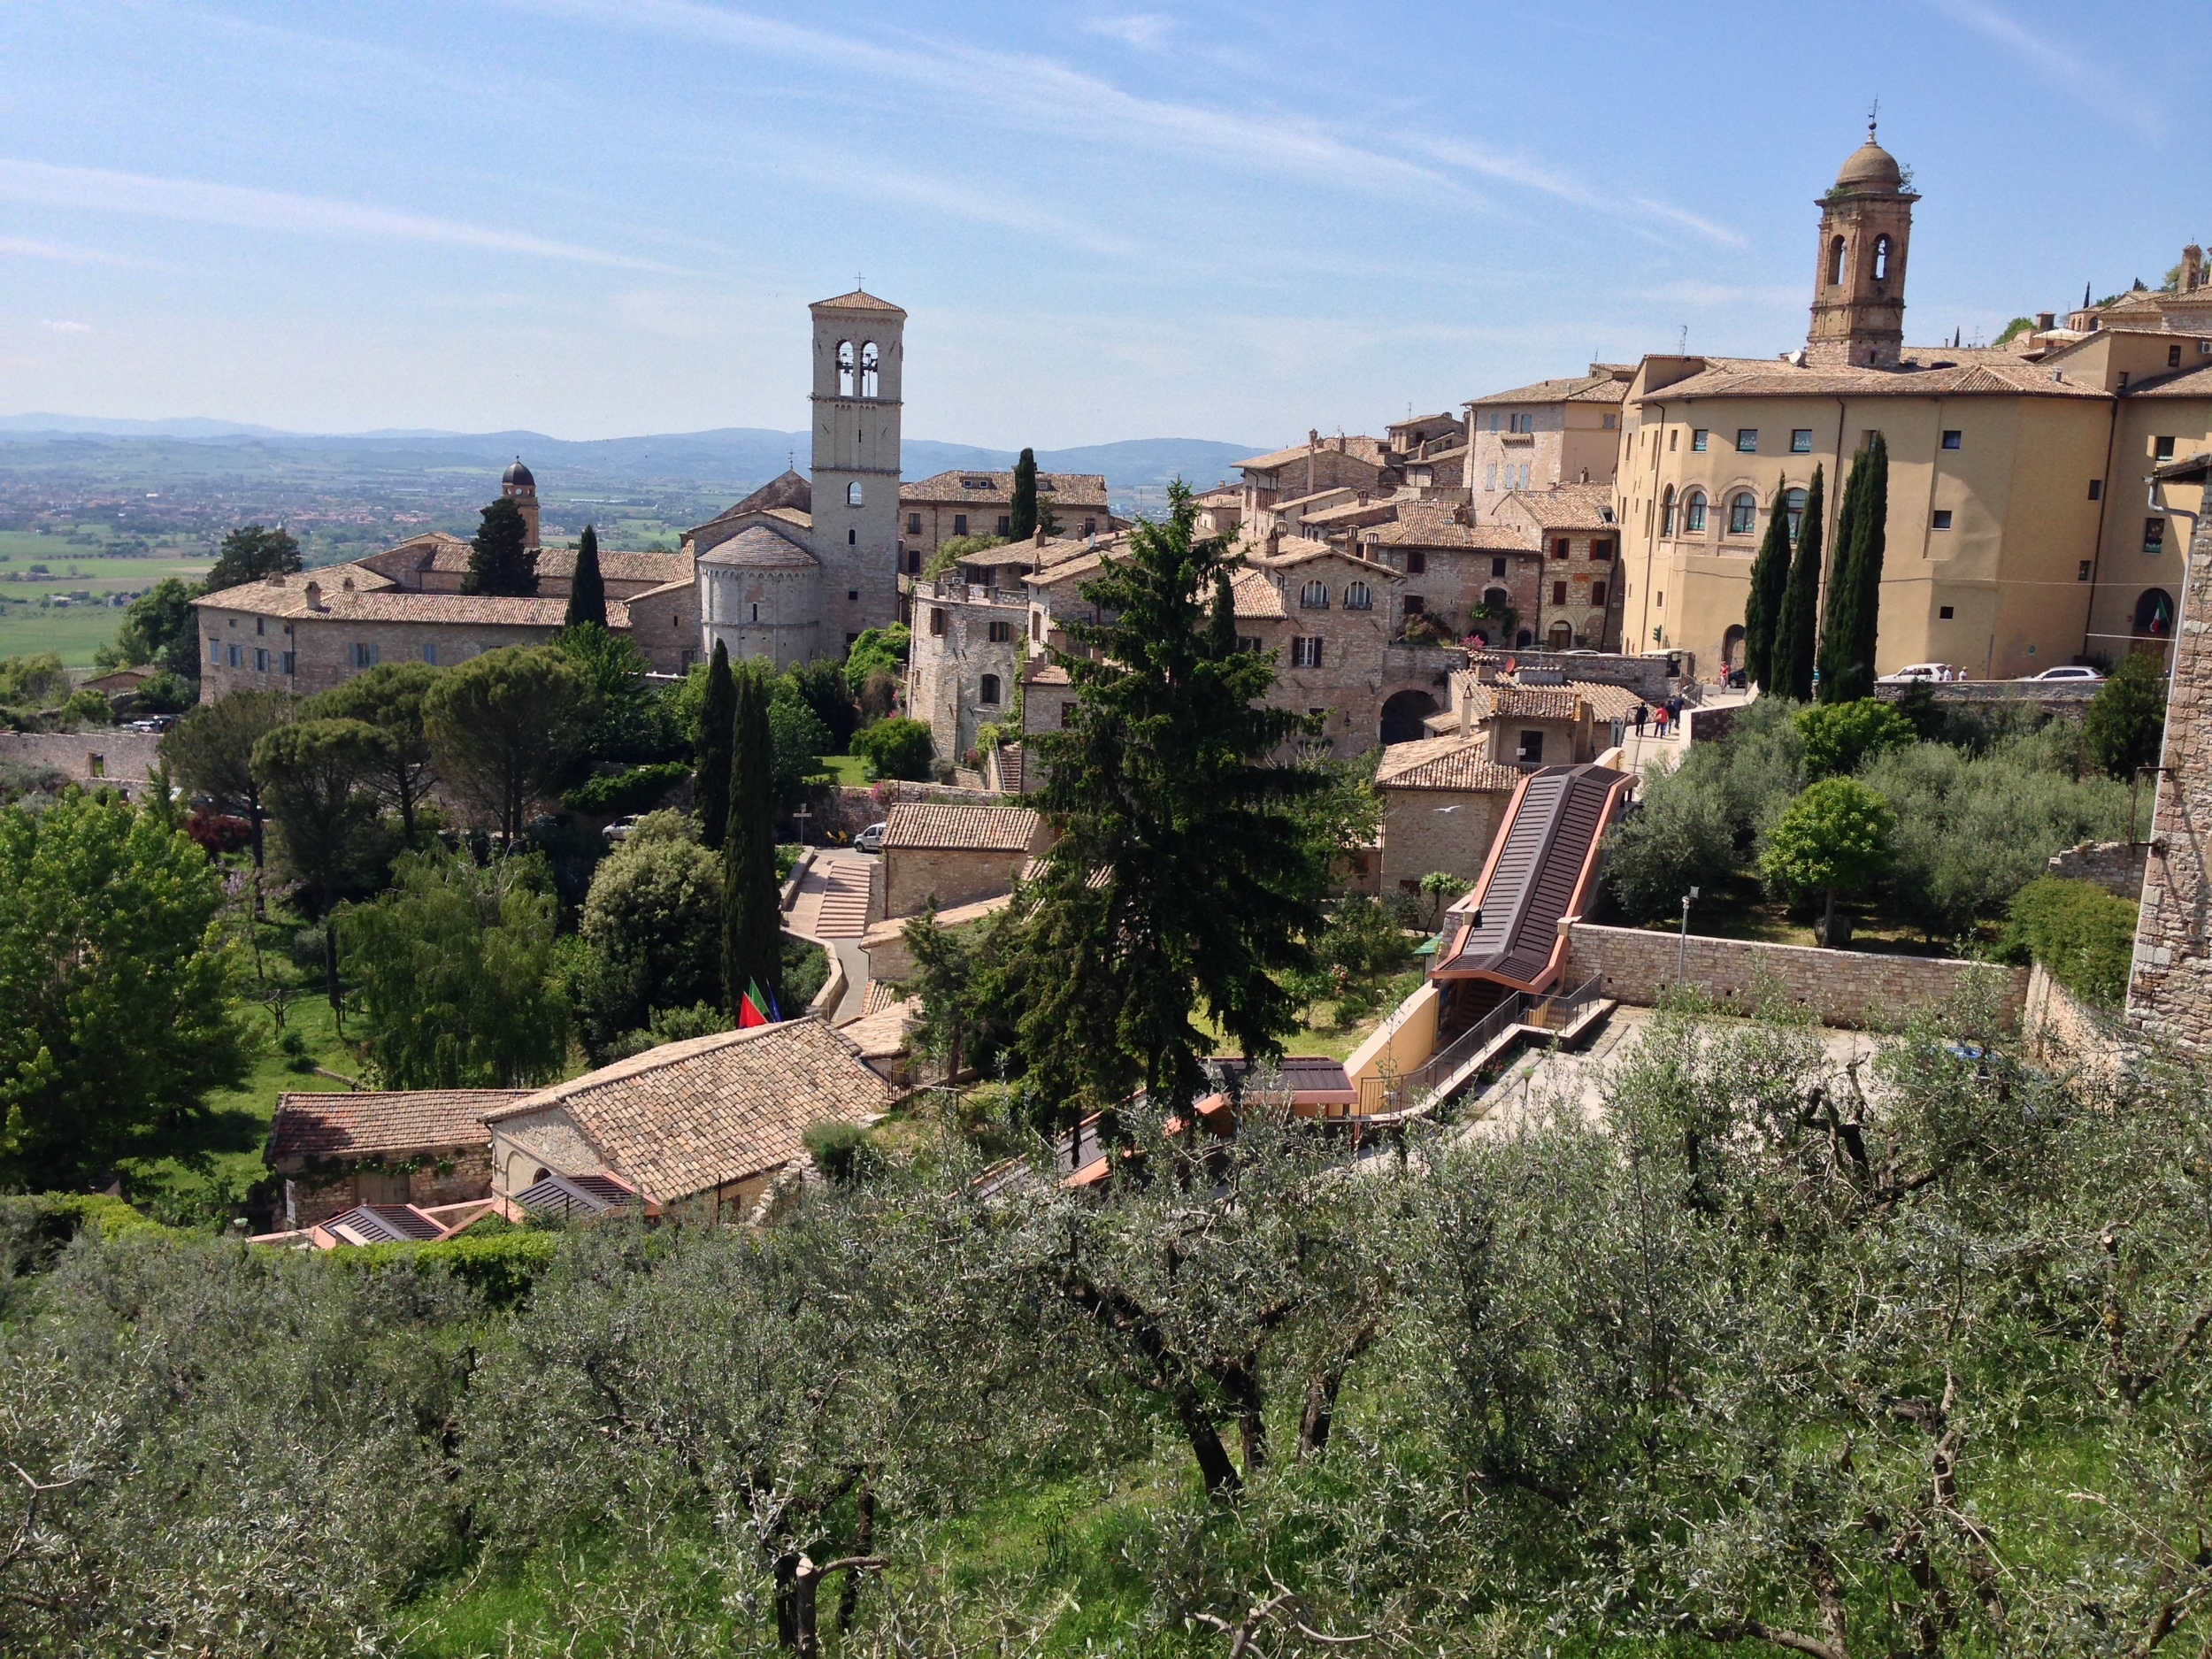 Hill town in Umbria